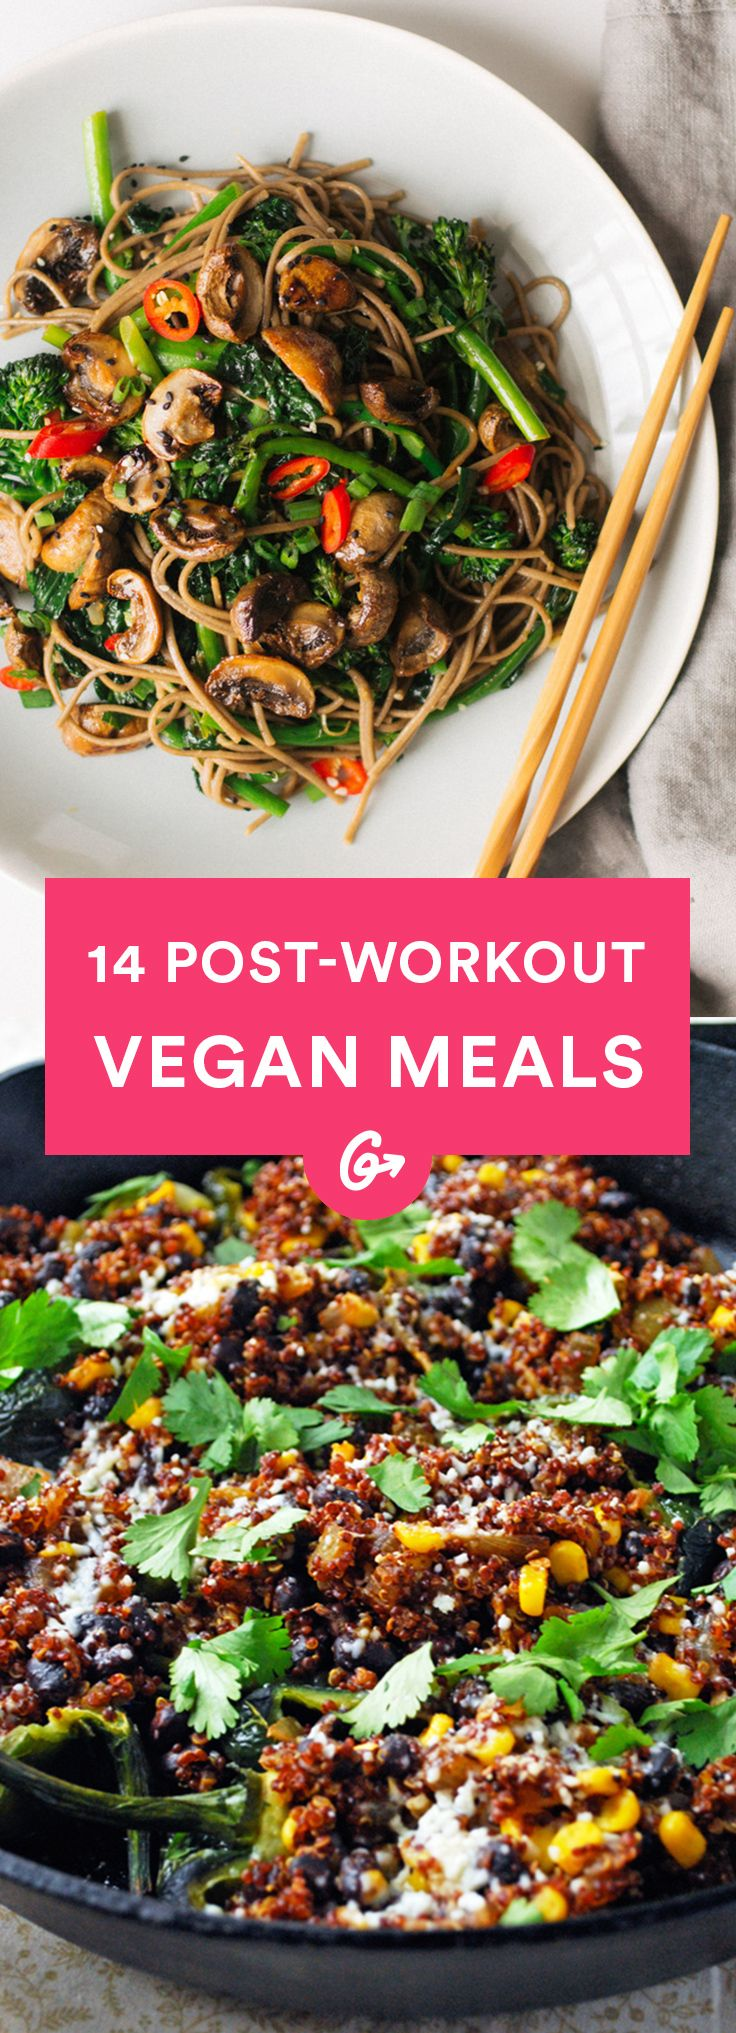 14 Awesome Post-Workout Meals for Vegans  #vegan #postworkout #recipes http://greatist.com/eat/vegan-post-workout-meals